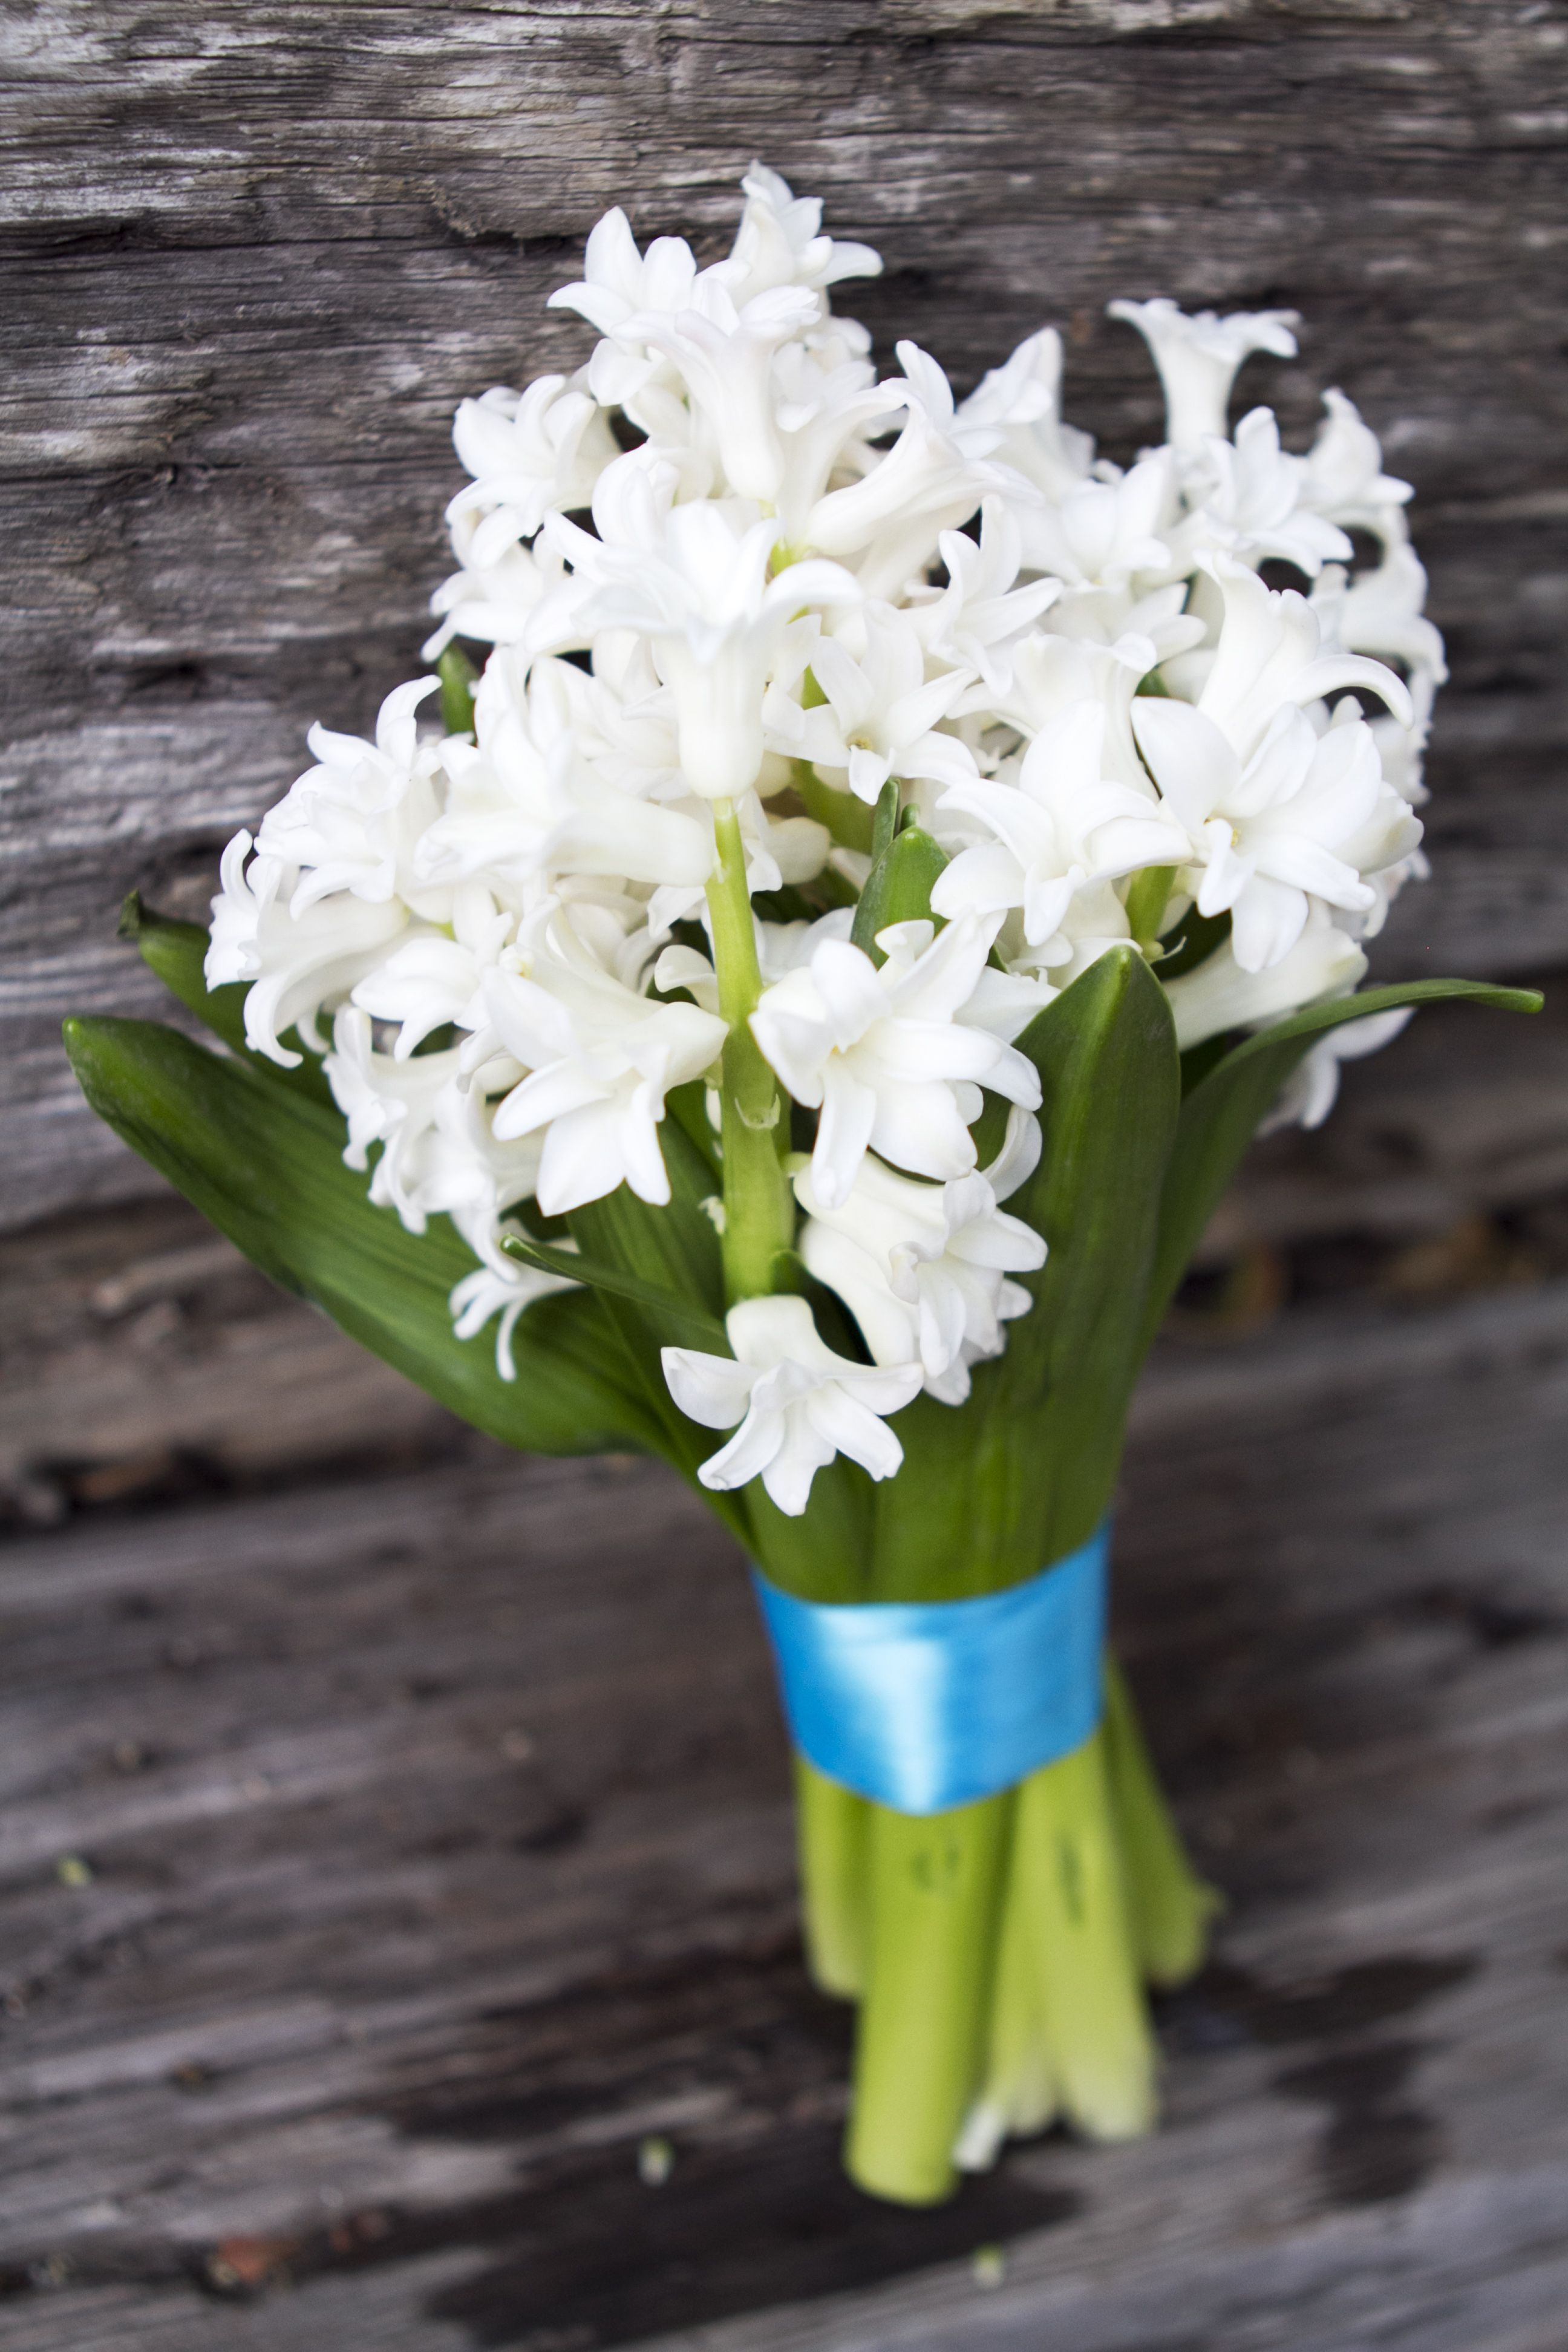 Bouquet with white hyacinth and teal blue ribbon simply bouquets bouquet with white hyacinth and teal blue ribbon izmirmasajfo